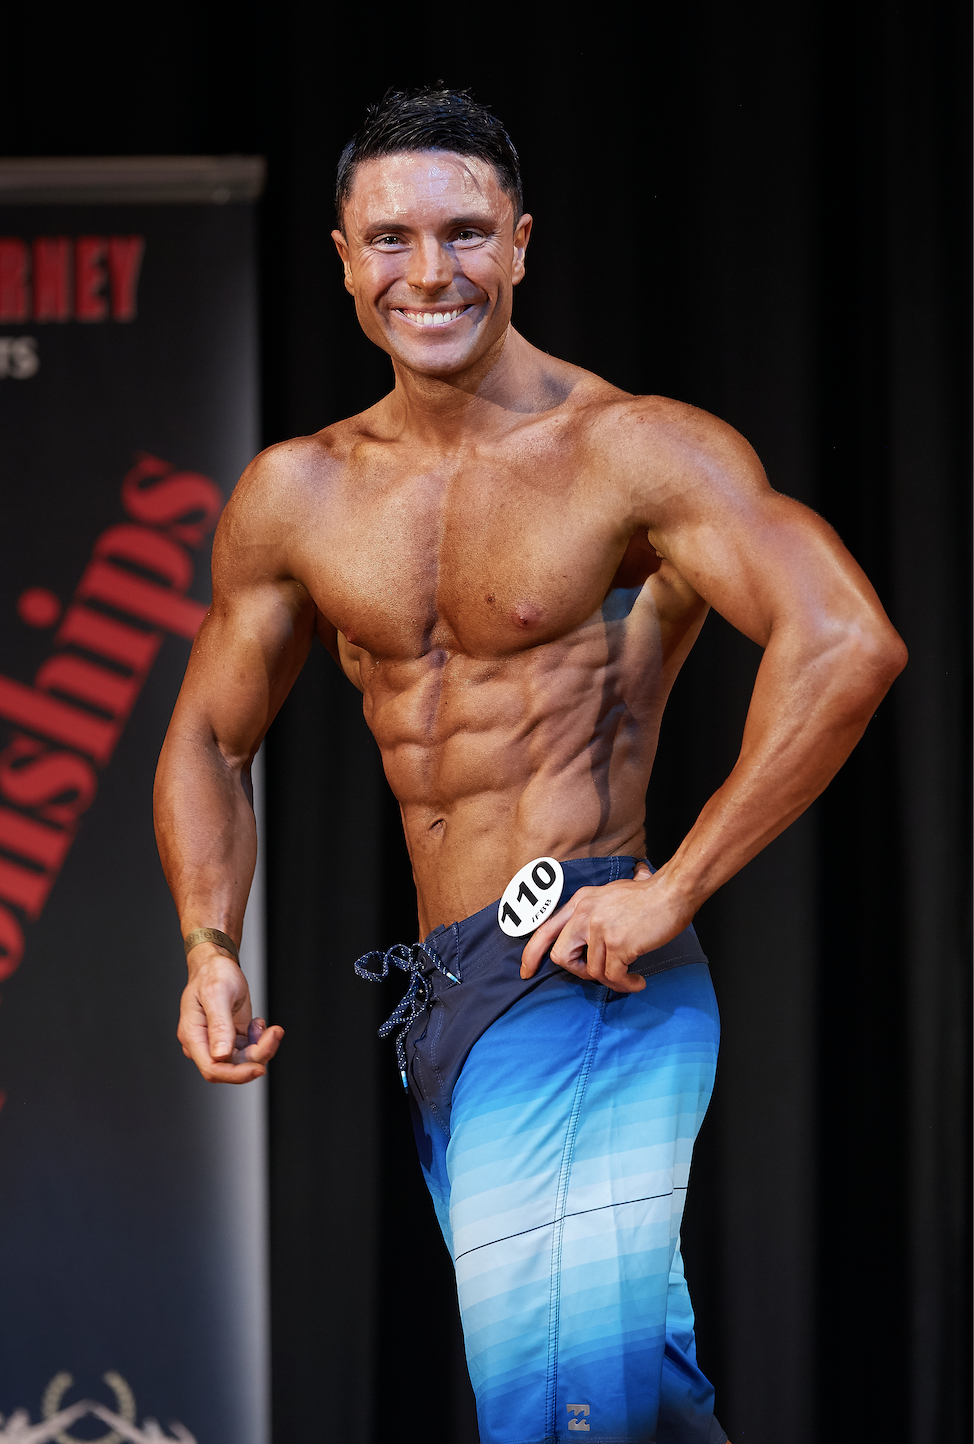 Nicola Rungo, winner of the up to 173 cm men's physique class.